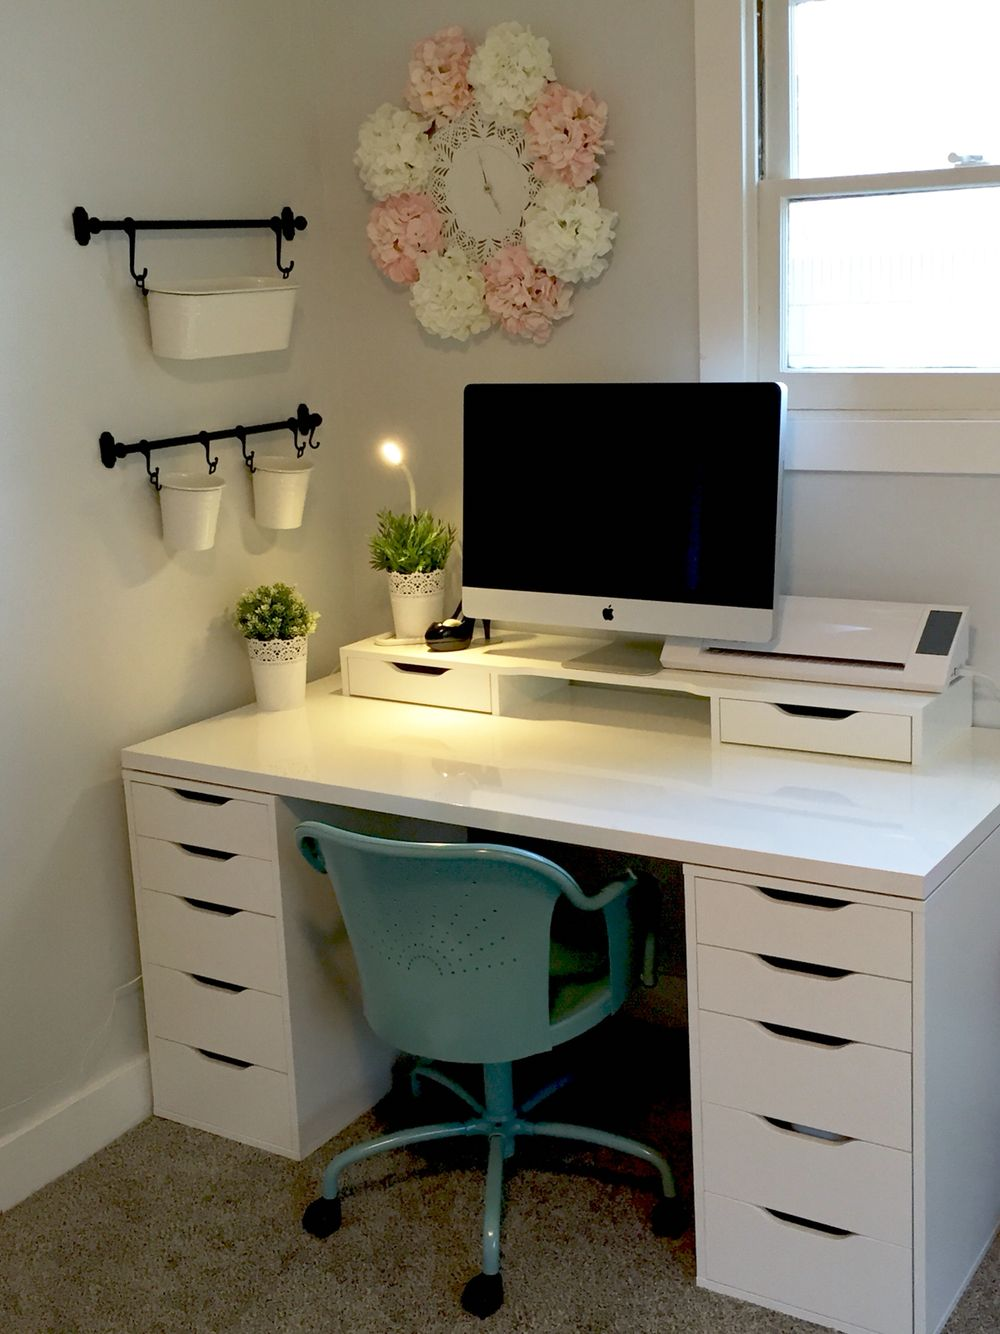 The 25 best ikea alex desk ideas on pinterest desks for Office table ideas